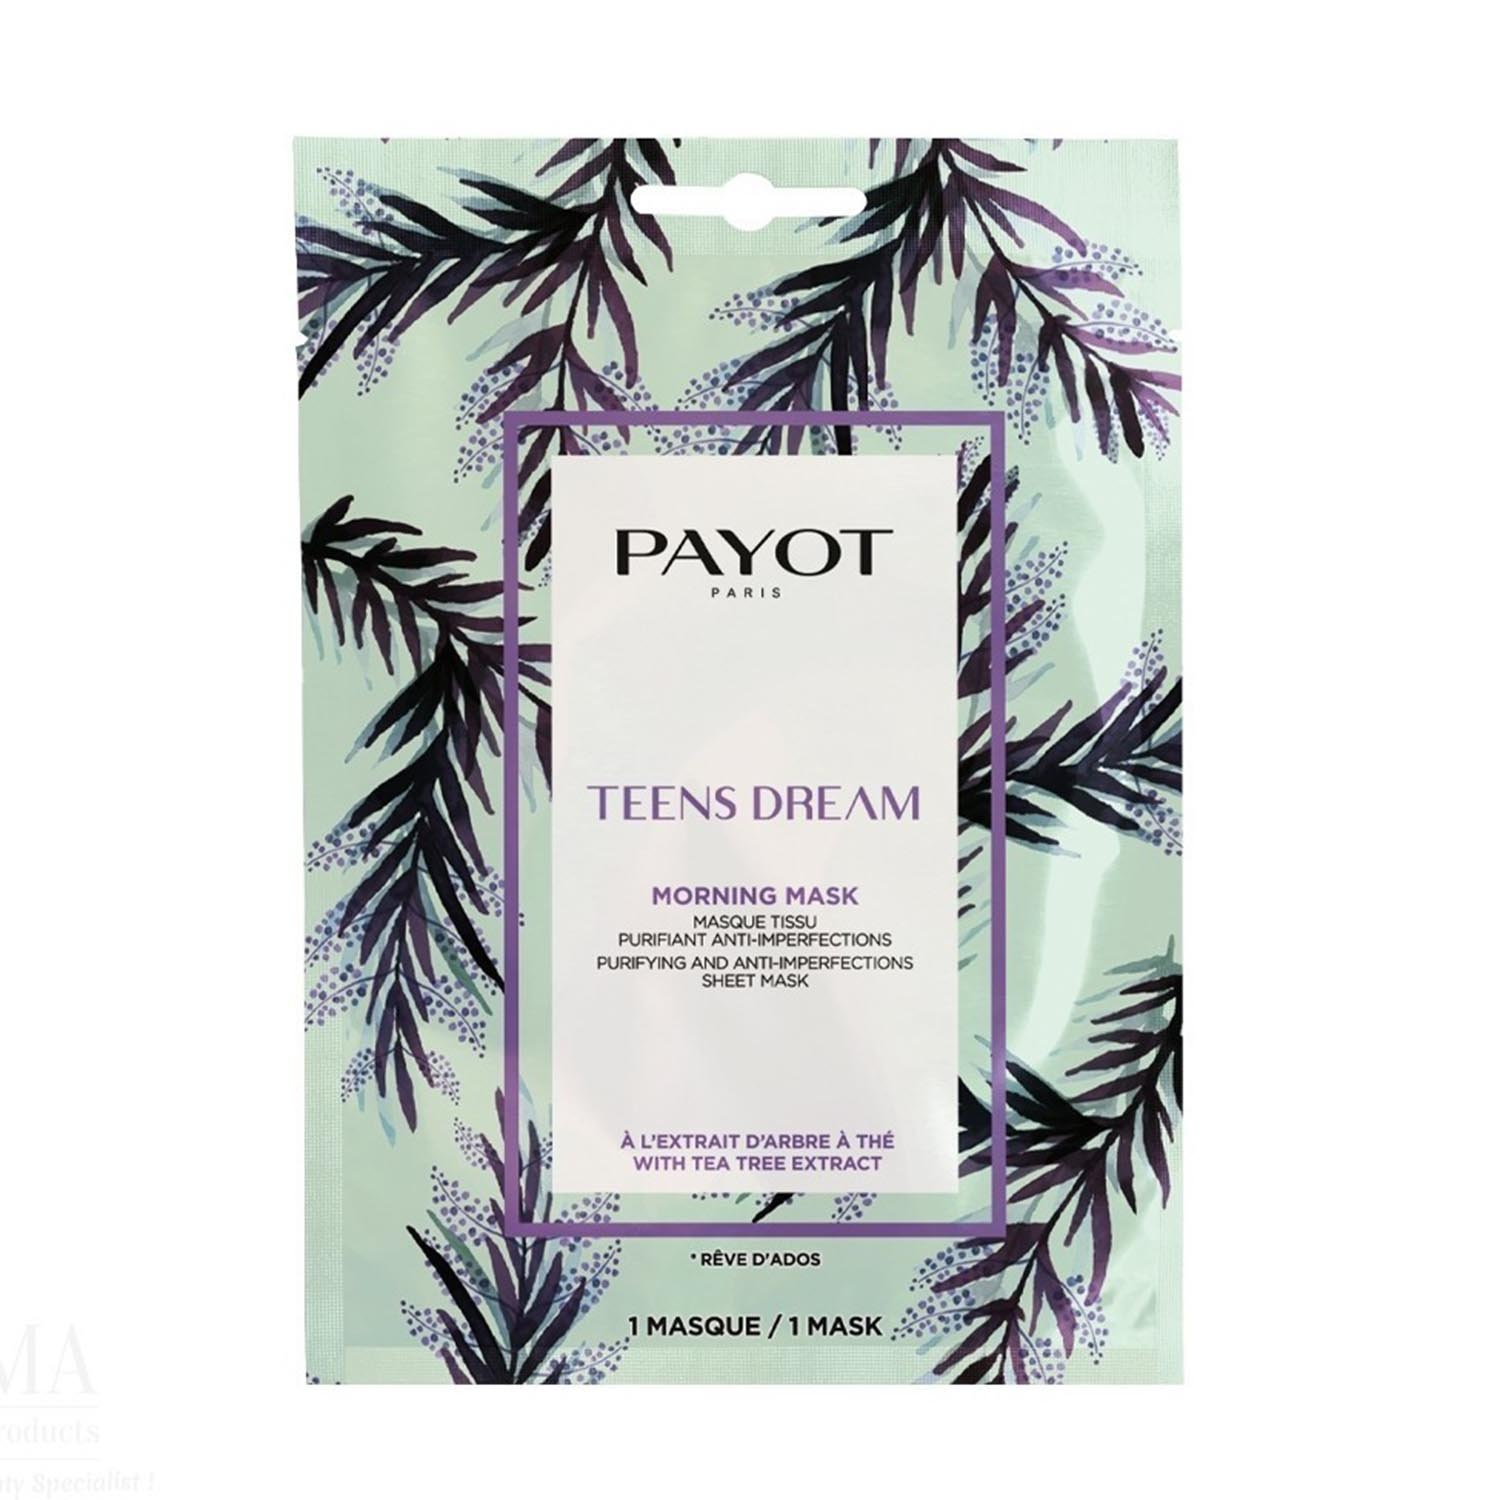 Payot teens dream morning mask 15ud